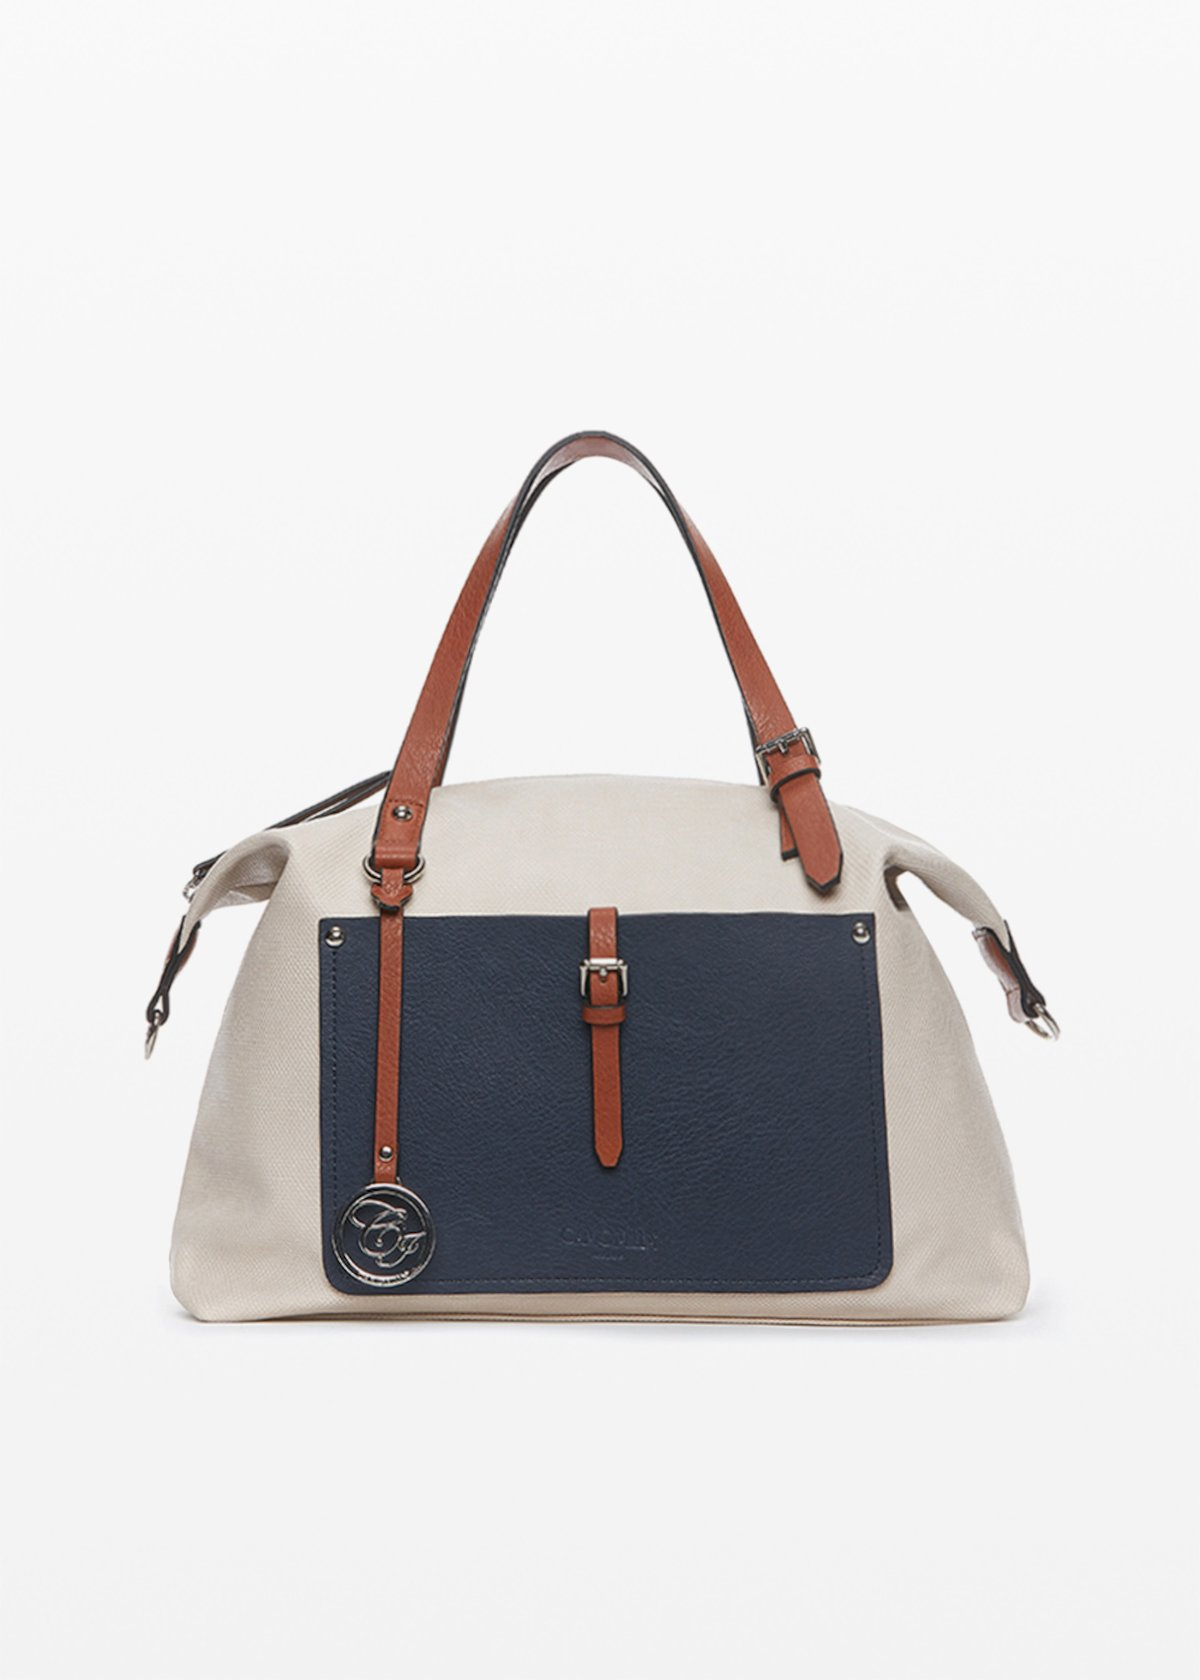 Faux leather Brenda handbag with front pocket - Light Beige /  Medium Blue - Woman - Category image